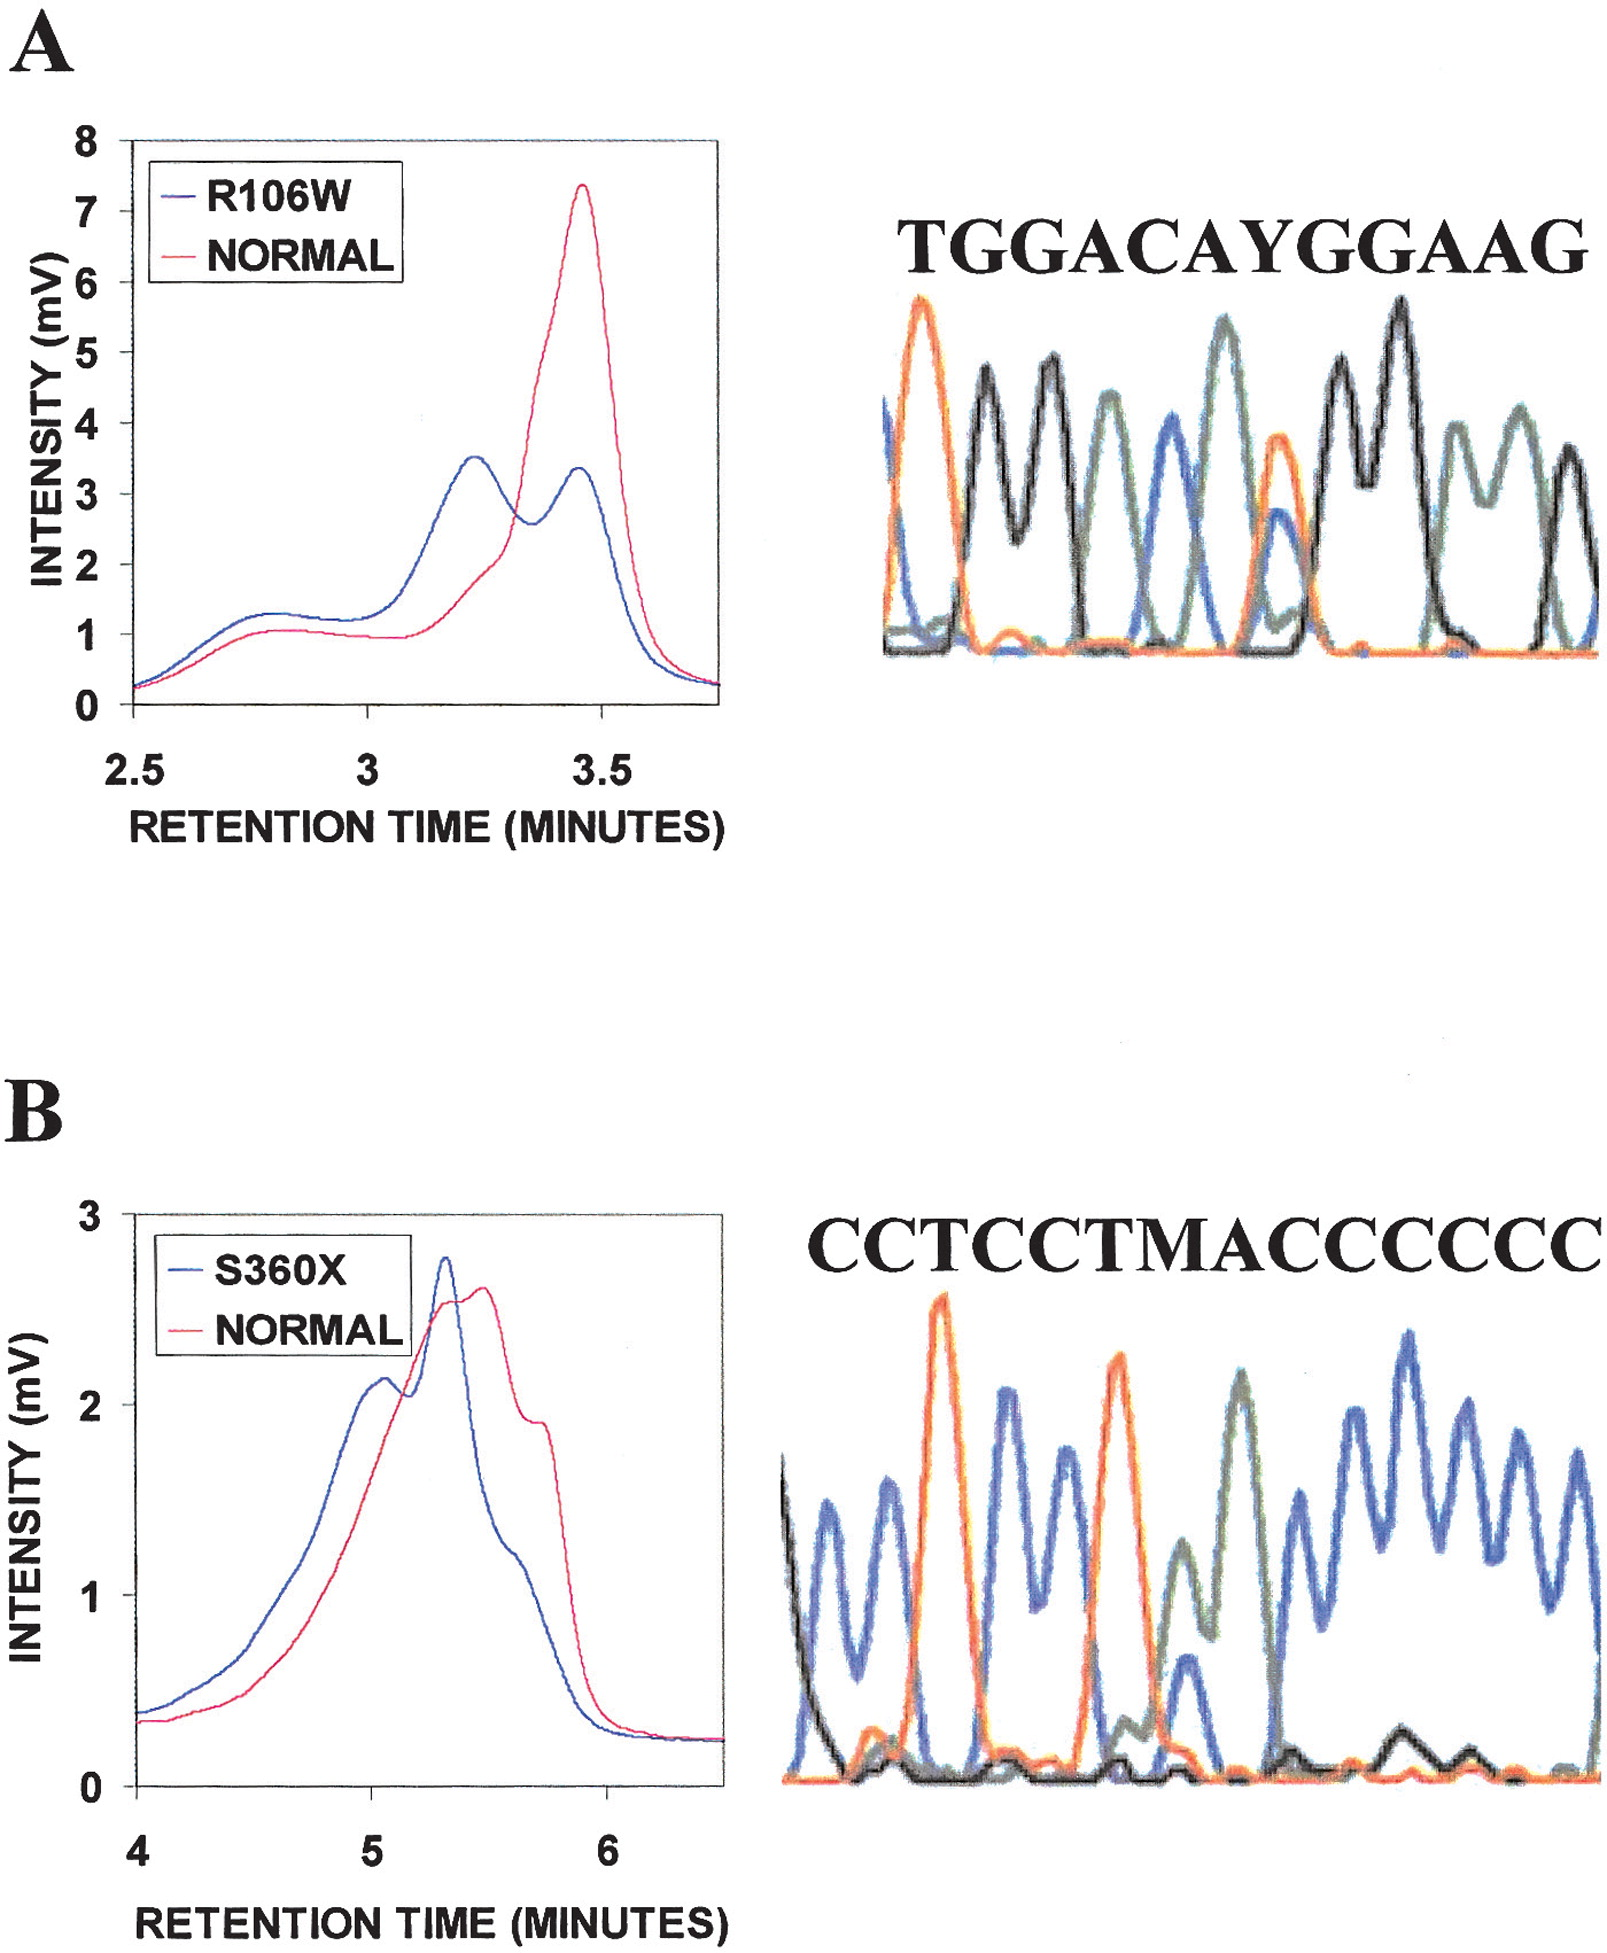 Diagnostic Testing For Rett Syndrome By Dhplc And Direct Sequencingysis Of The Mecp2 Gene